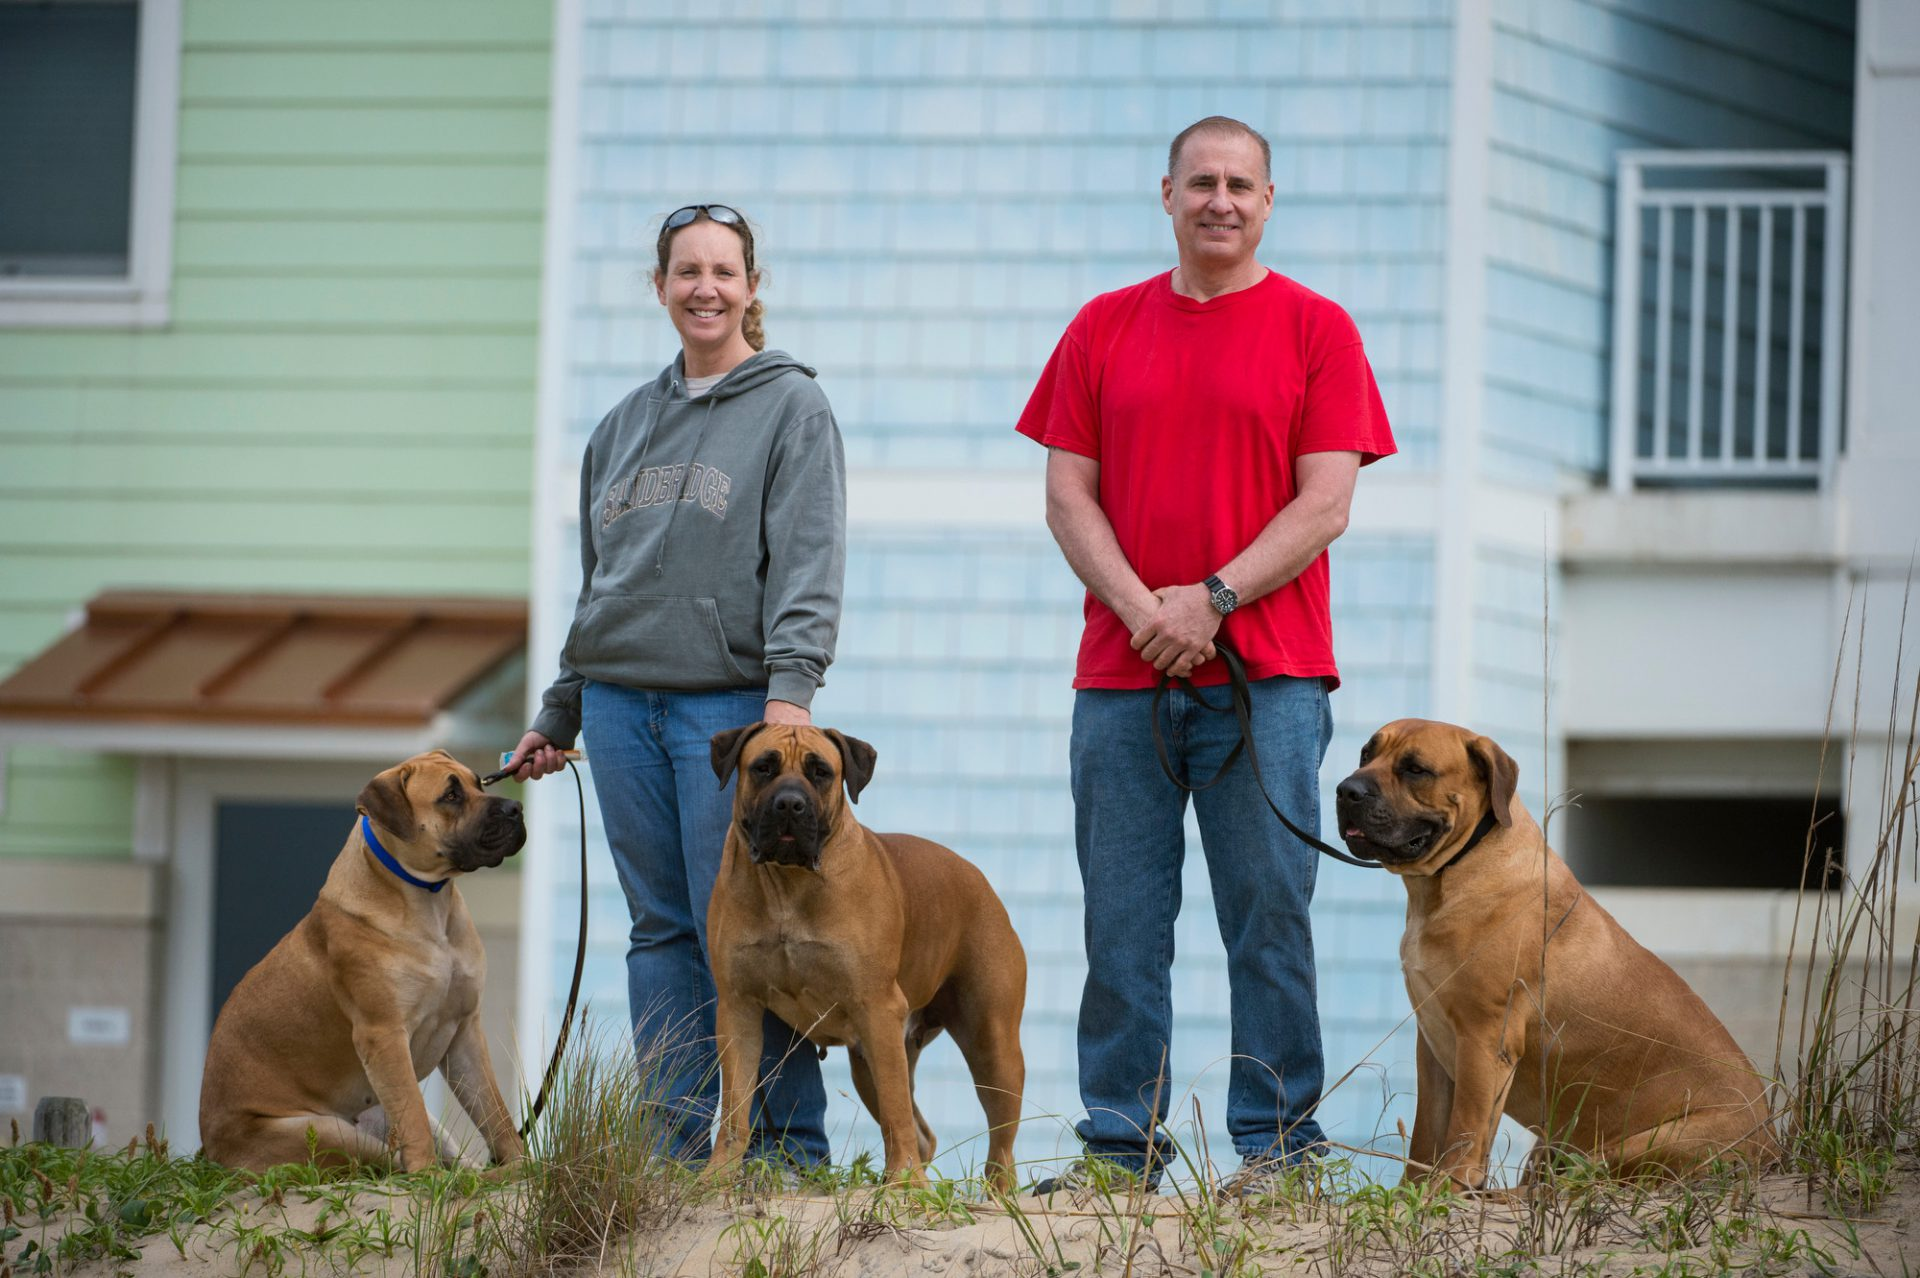 Photo: A man and woman with their three South African mastiffs at Virginia Beach, Virginia.